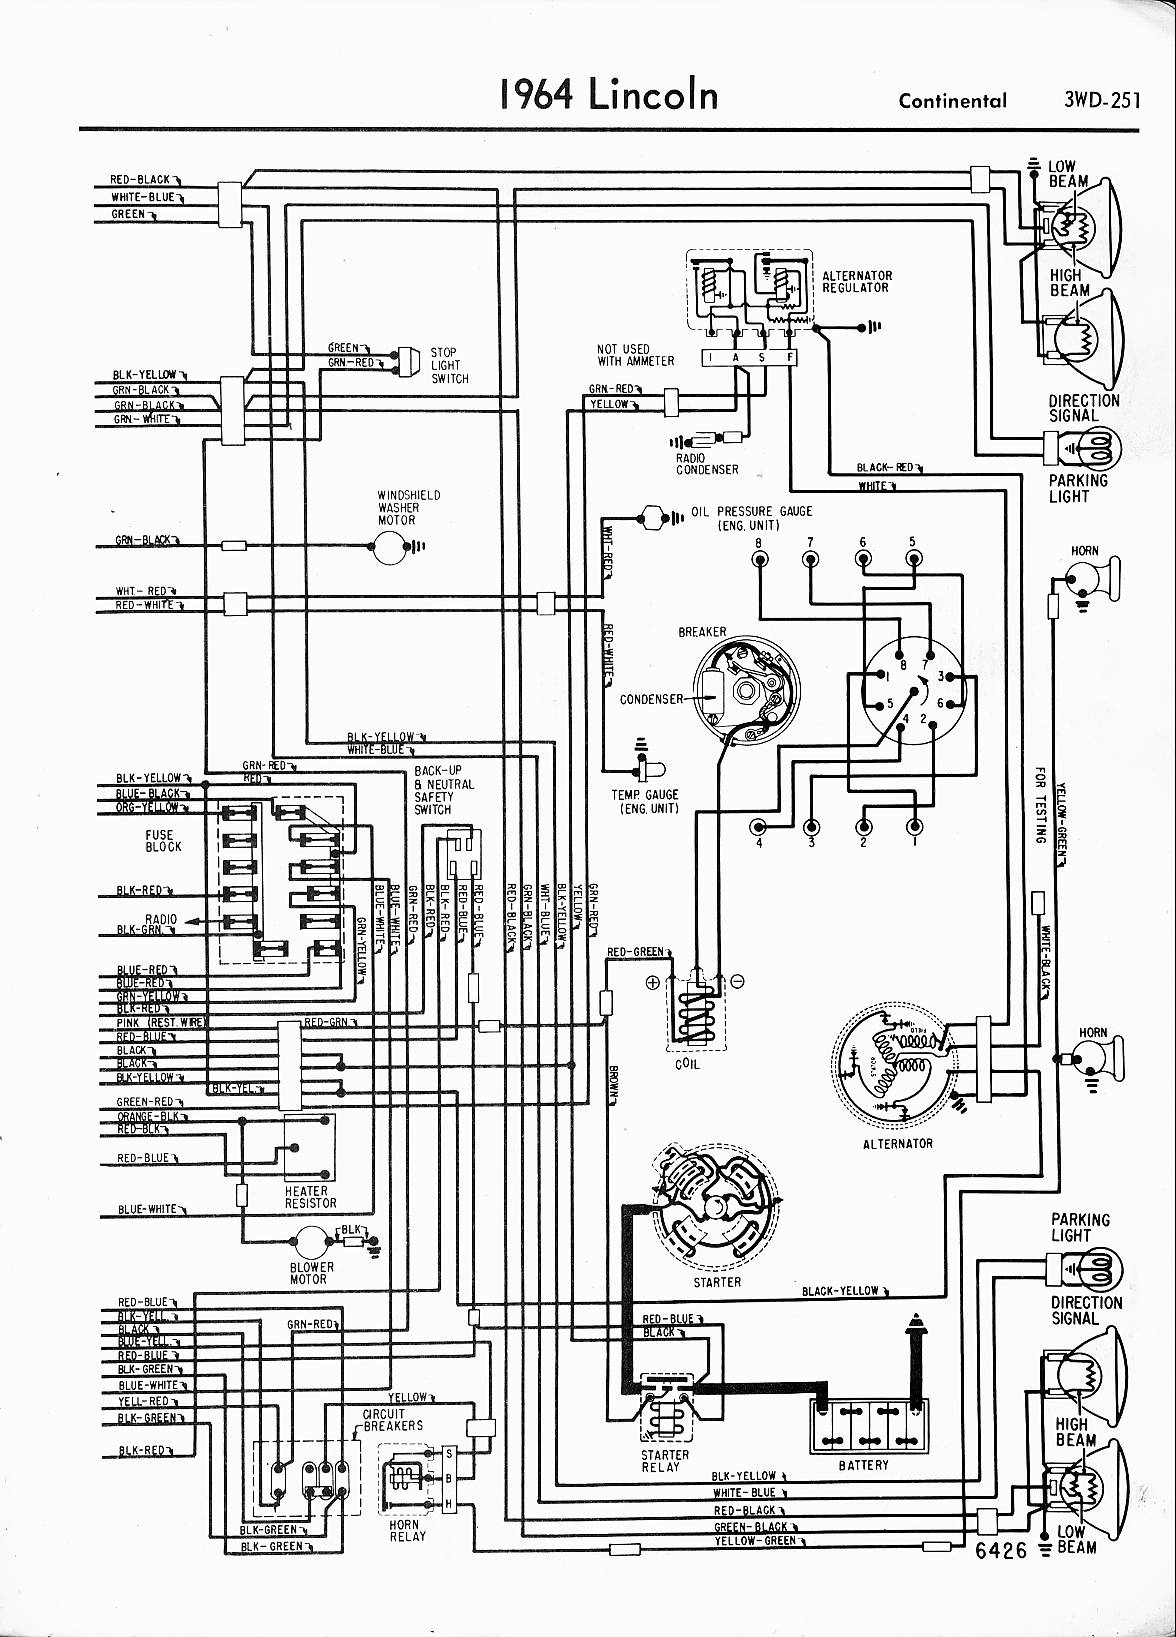 hight resolution of wiring diagram for a 1989 lincoln mark 7 wiring diagram used 1989 lincoln mark vii fuse box diagram